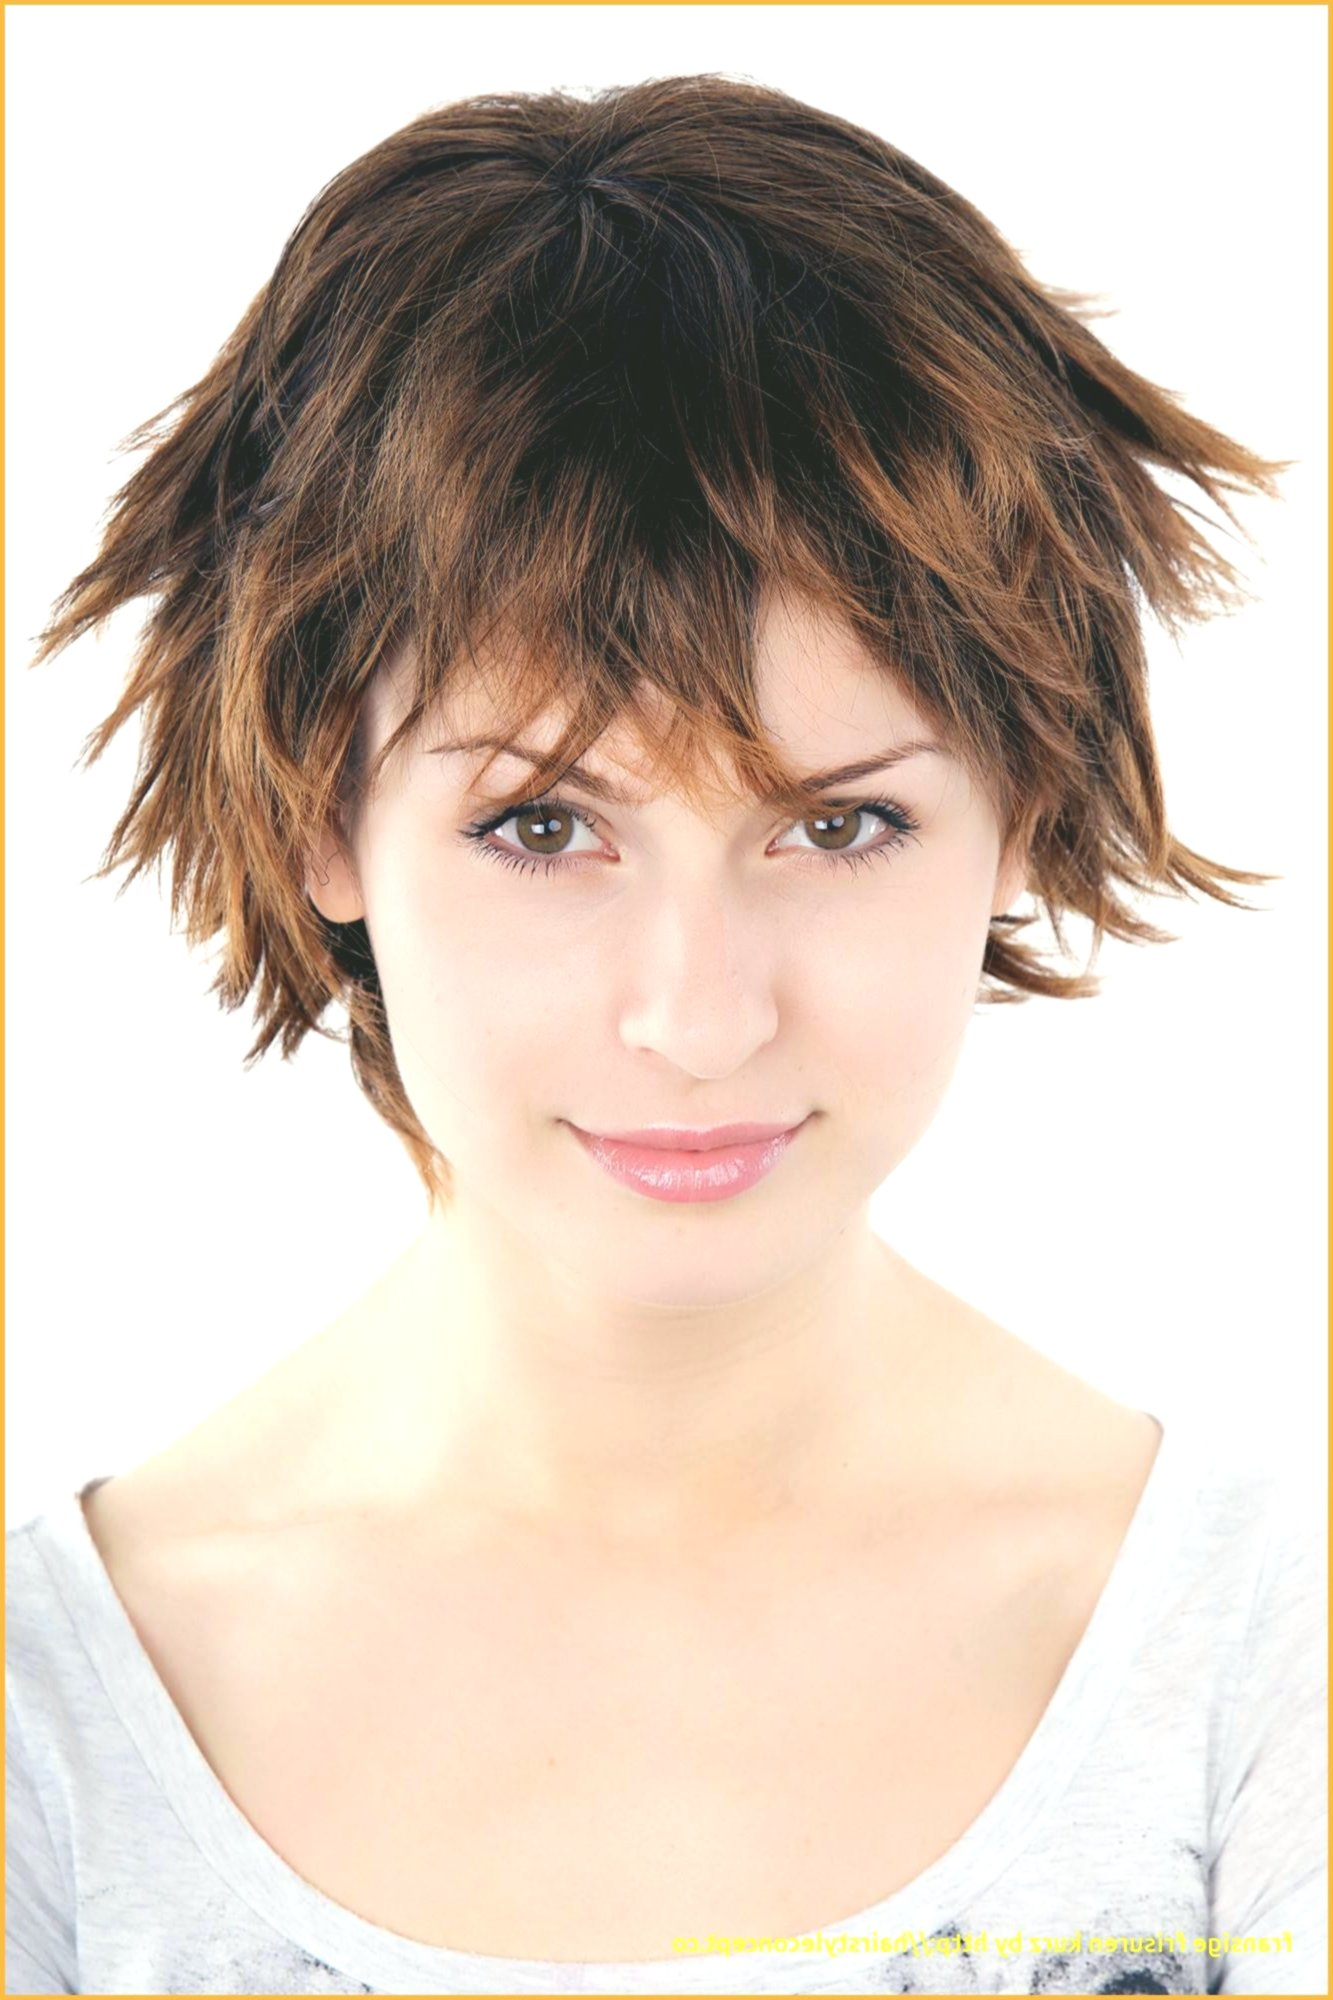 terribly cool hairstyles ladies short plan-Fascinating hairstyles ladies Short construction